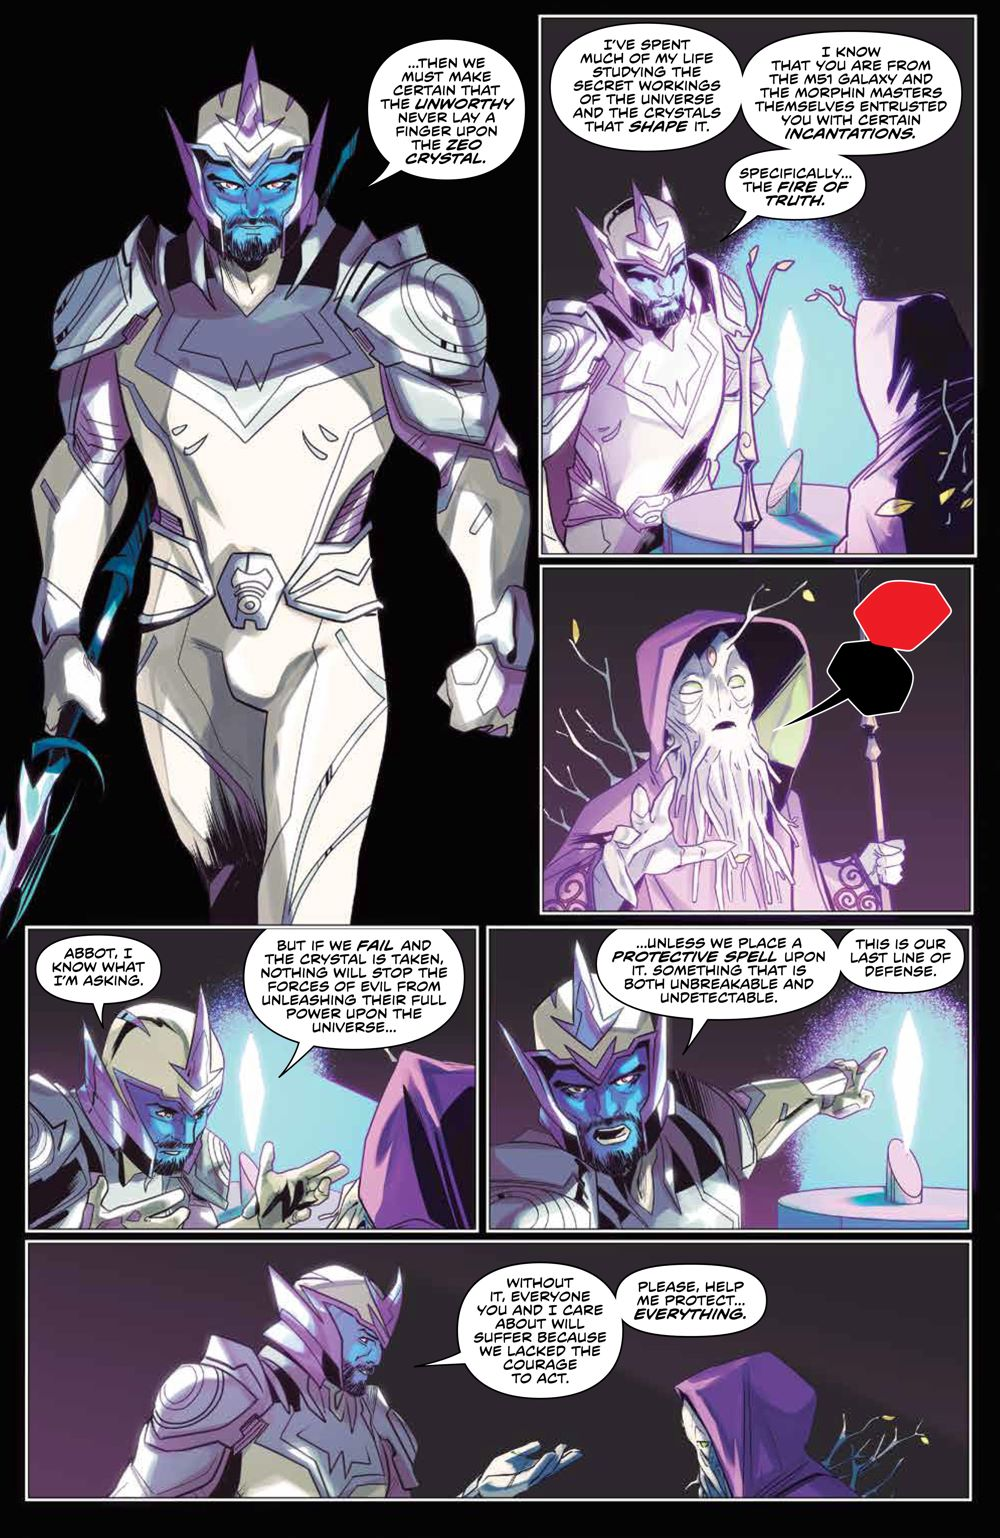 Mighty_Morphin_009_PRESS_4 ComicList Previews: MIGHTY MORPHIN #9